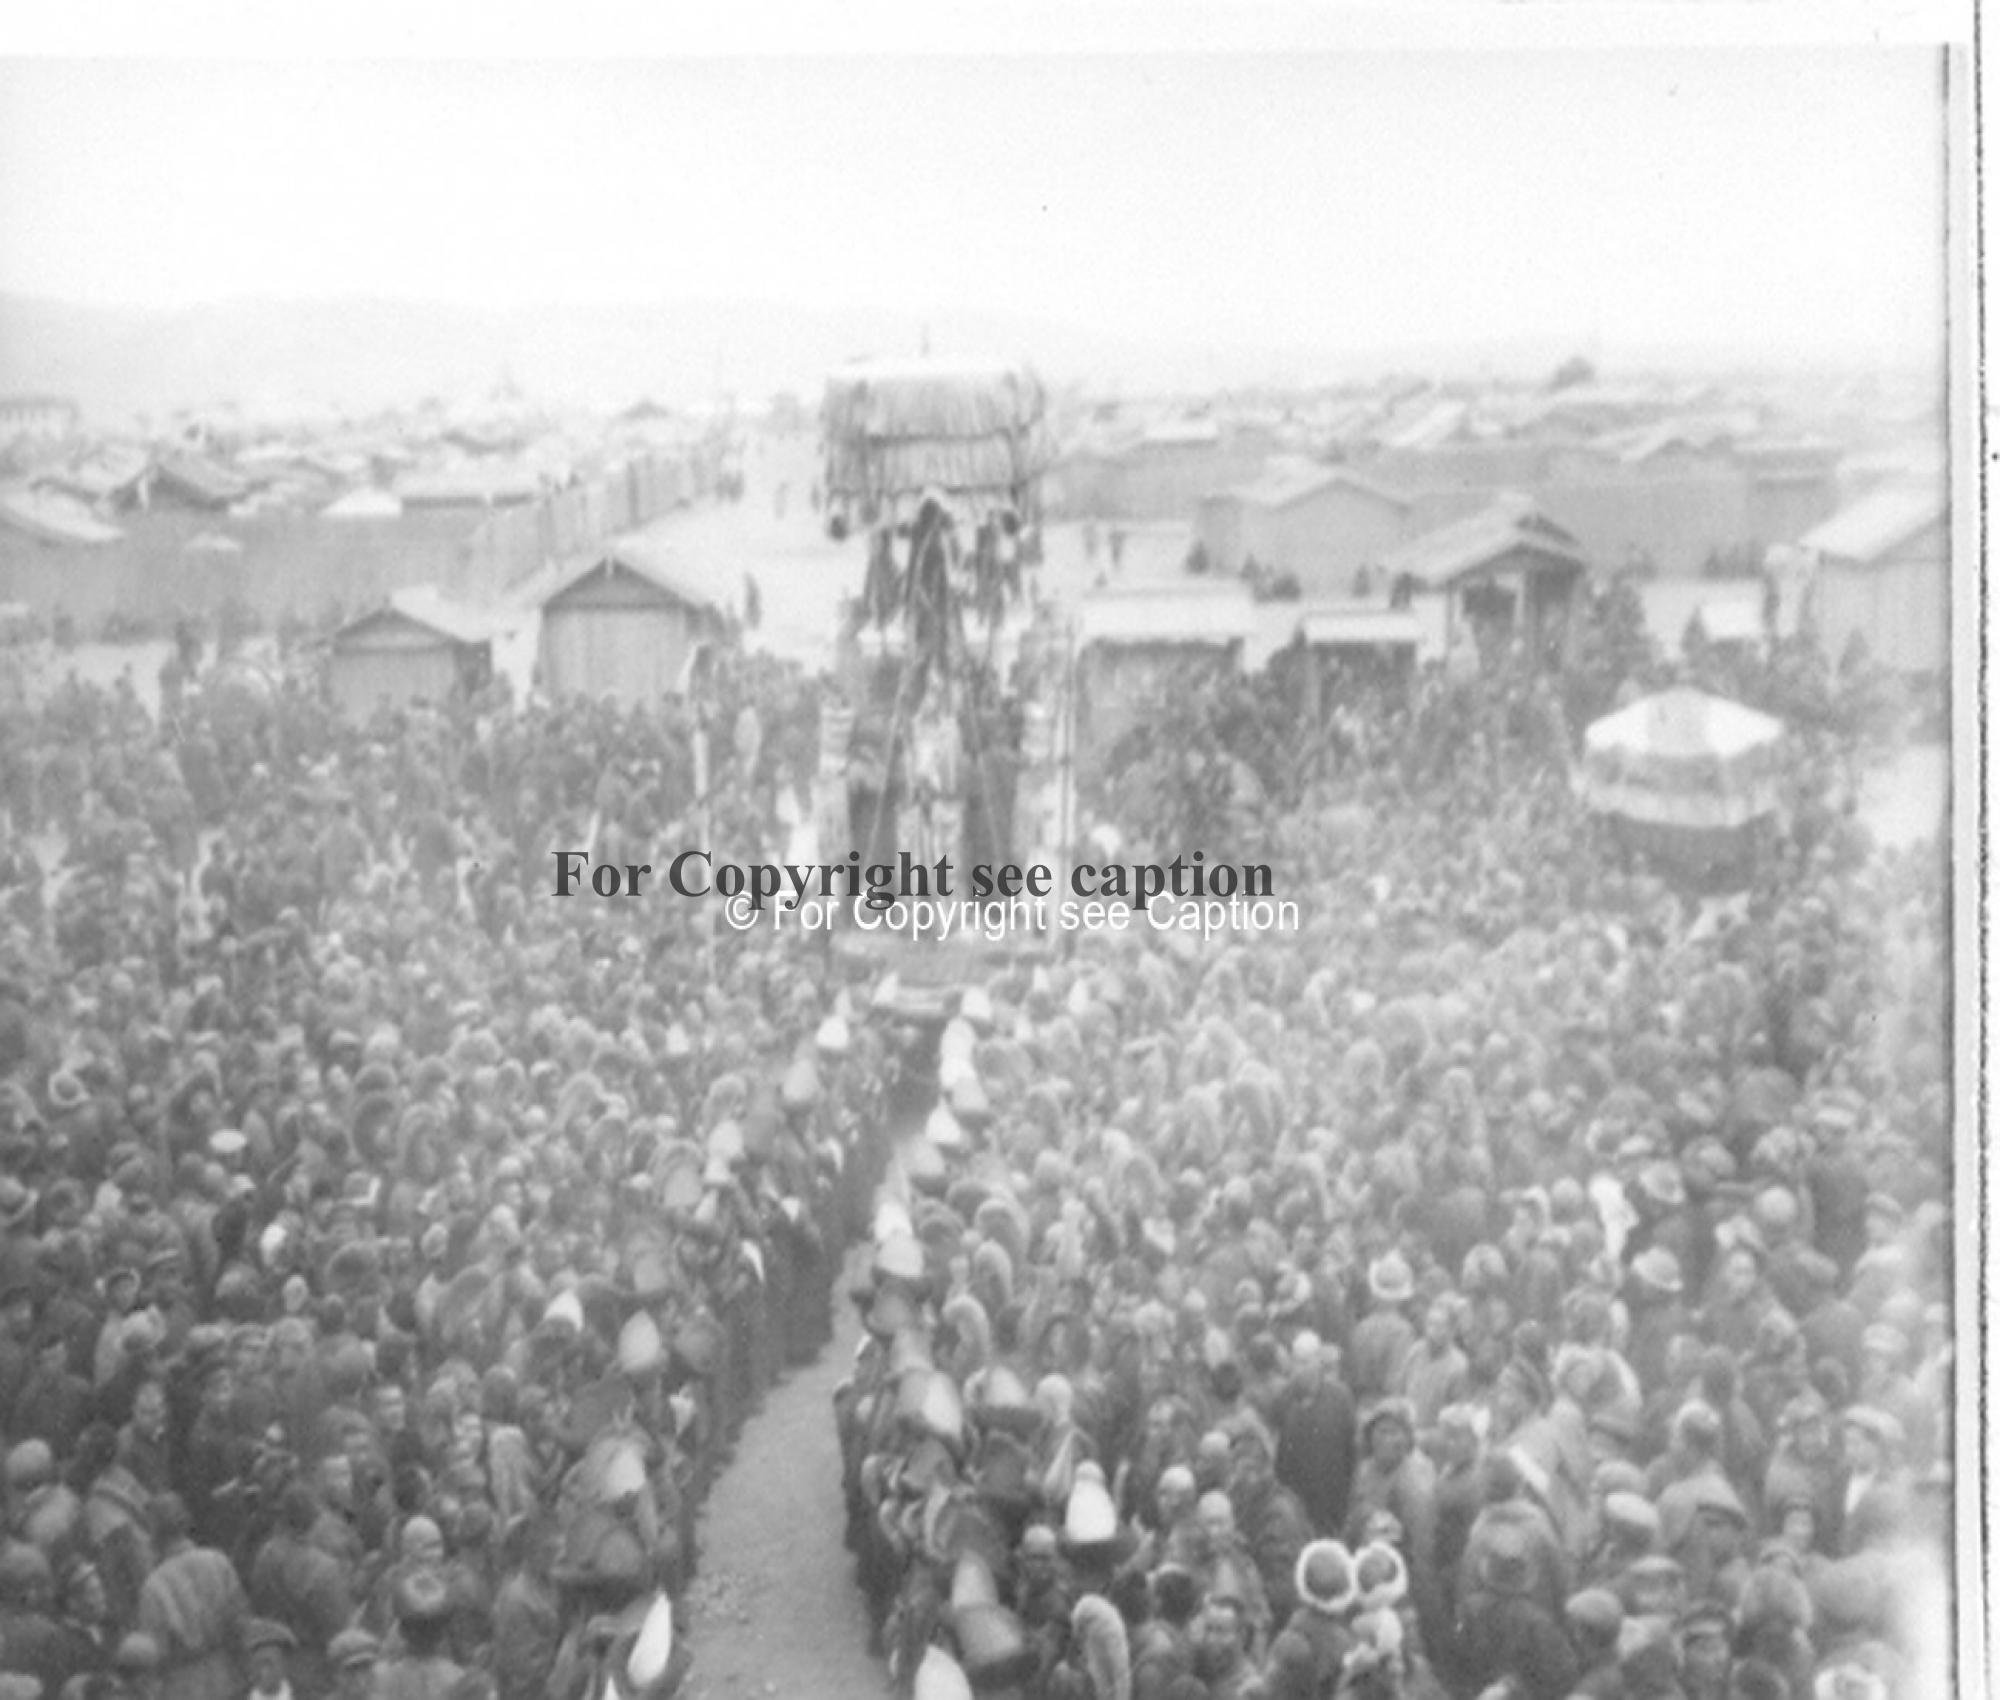 Maitreya procession. Film Archives K-24764